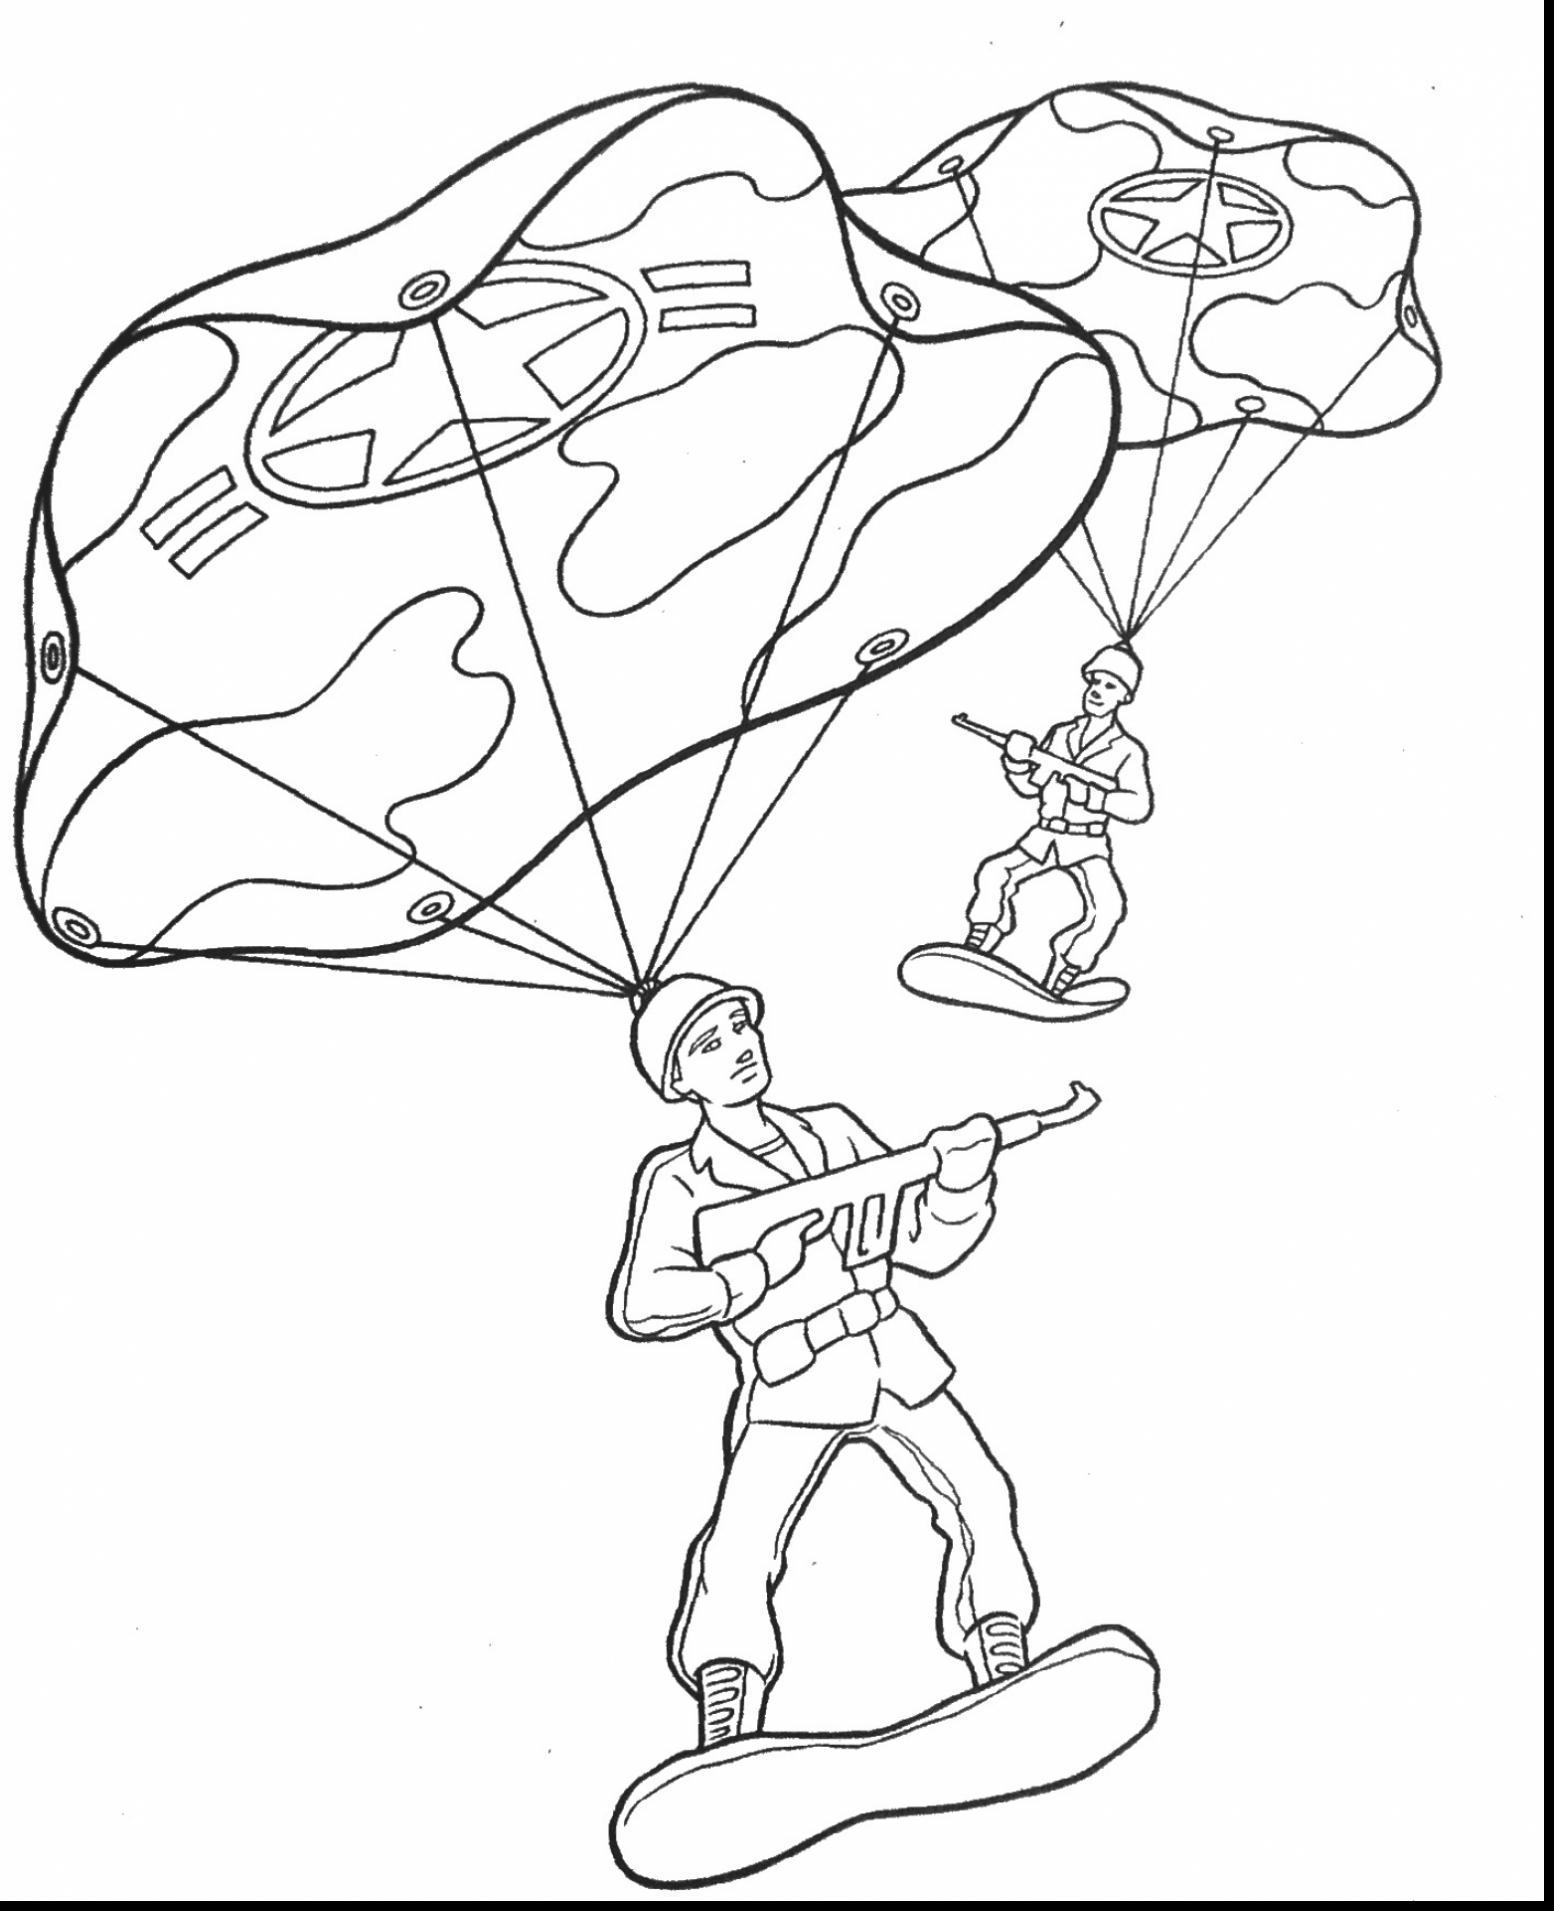 1554x1911 Unbelievable Tiger Tank Coloring Page Printable Pics For Army